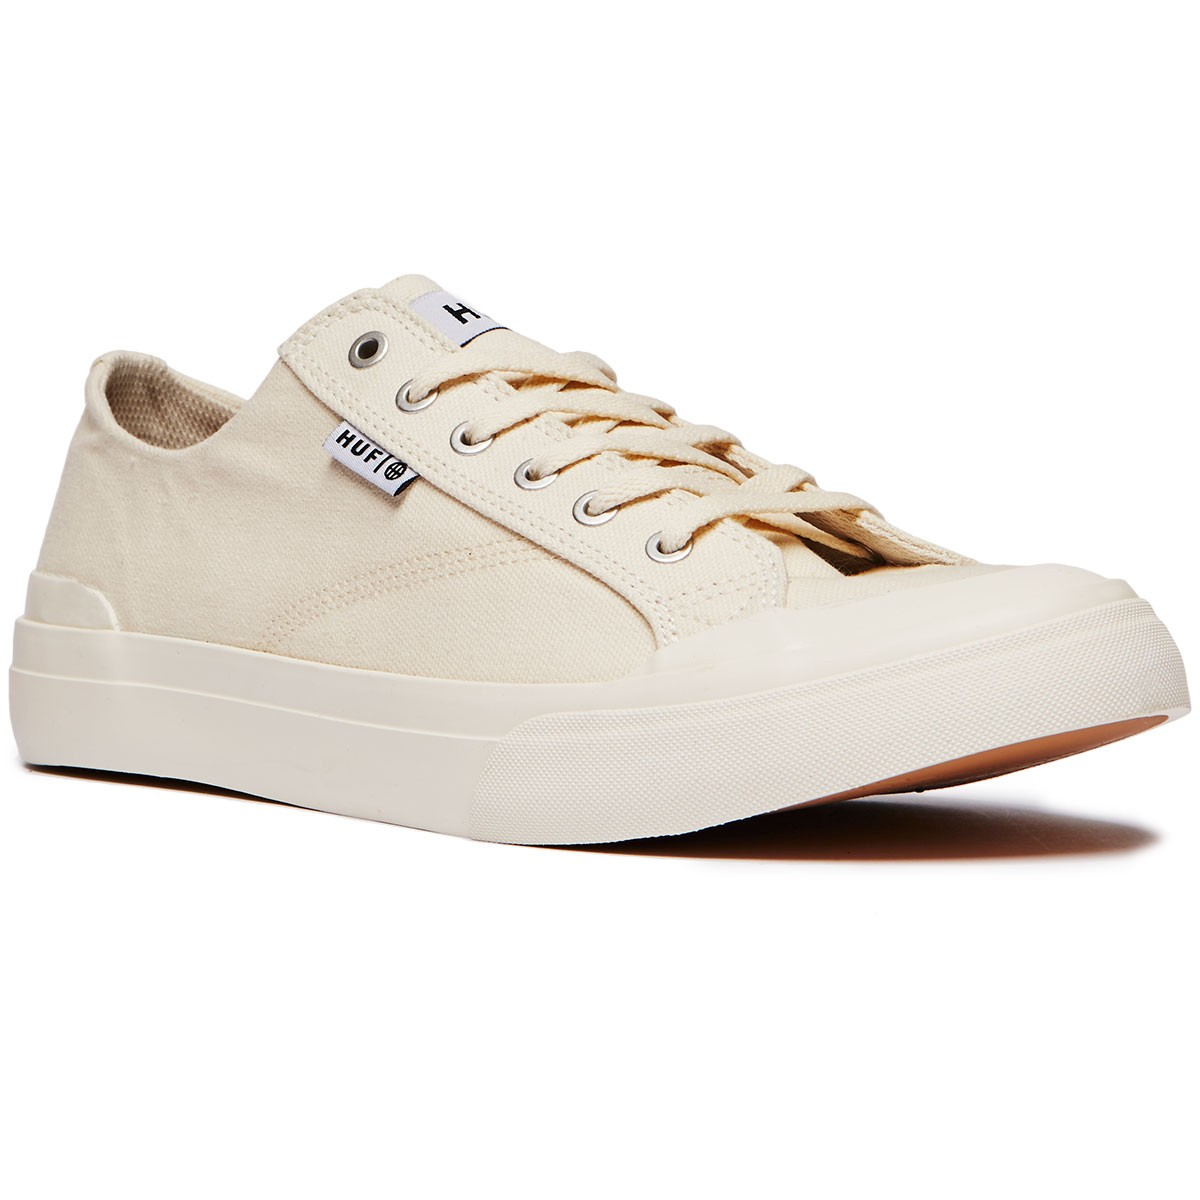 HUF Classic Lo Ess Tx Shoes - Natural - 8.0